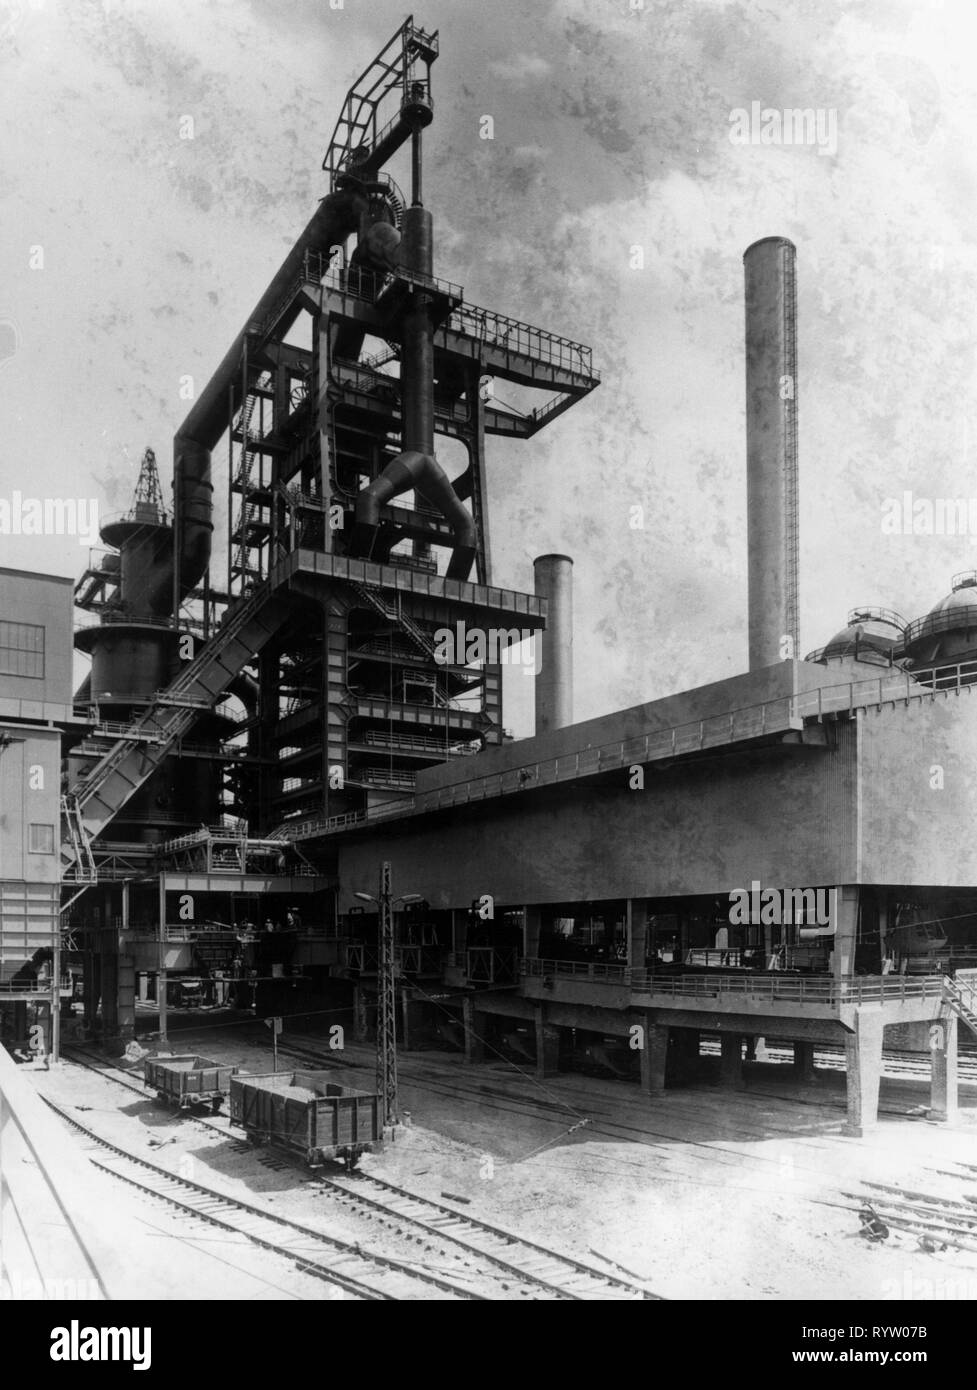 mine, smeltery August Thyssen, factory site, Duisburg, Germany, 1962, Additional-Rights-Clearance-Info-Not-Available - Stock Image